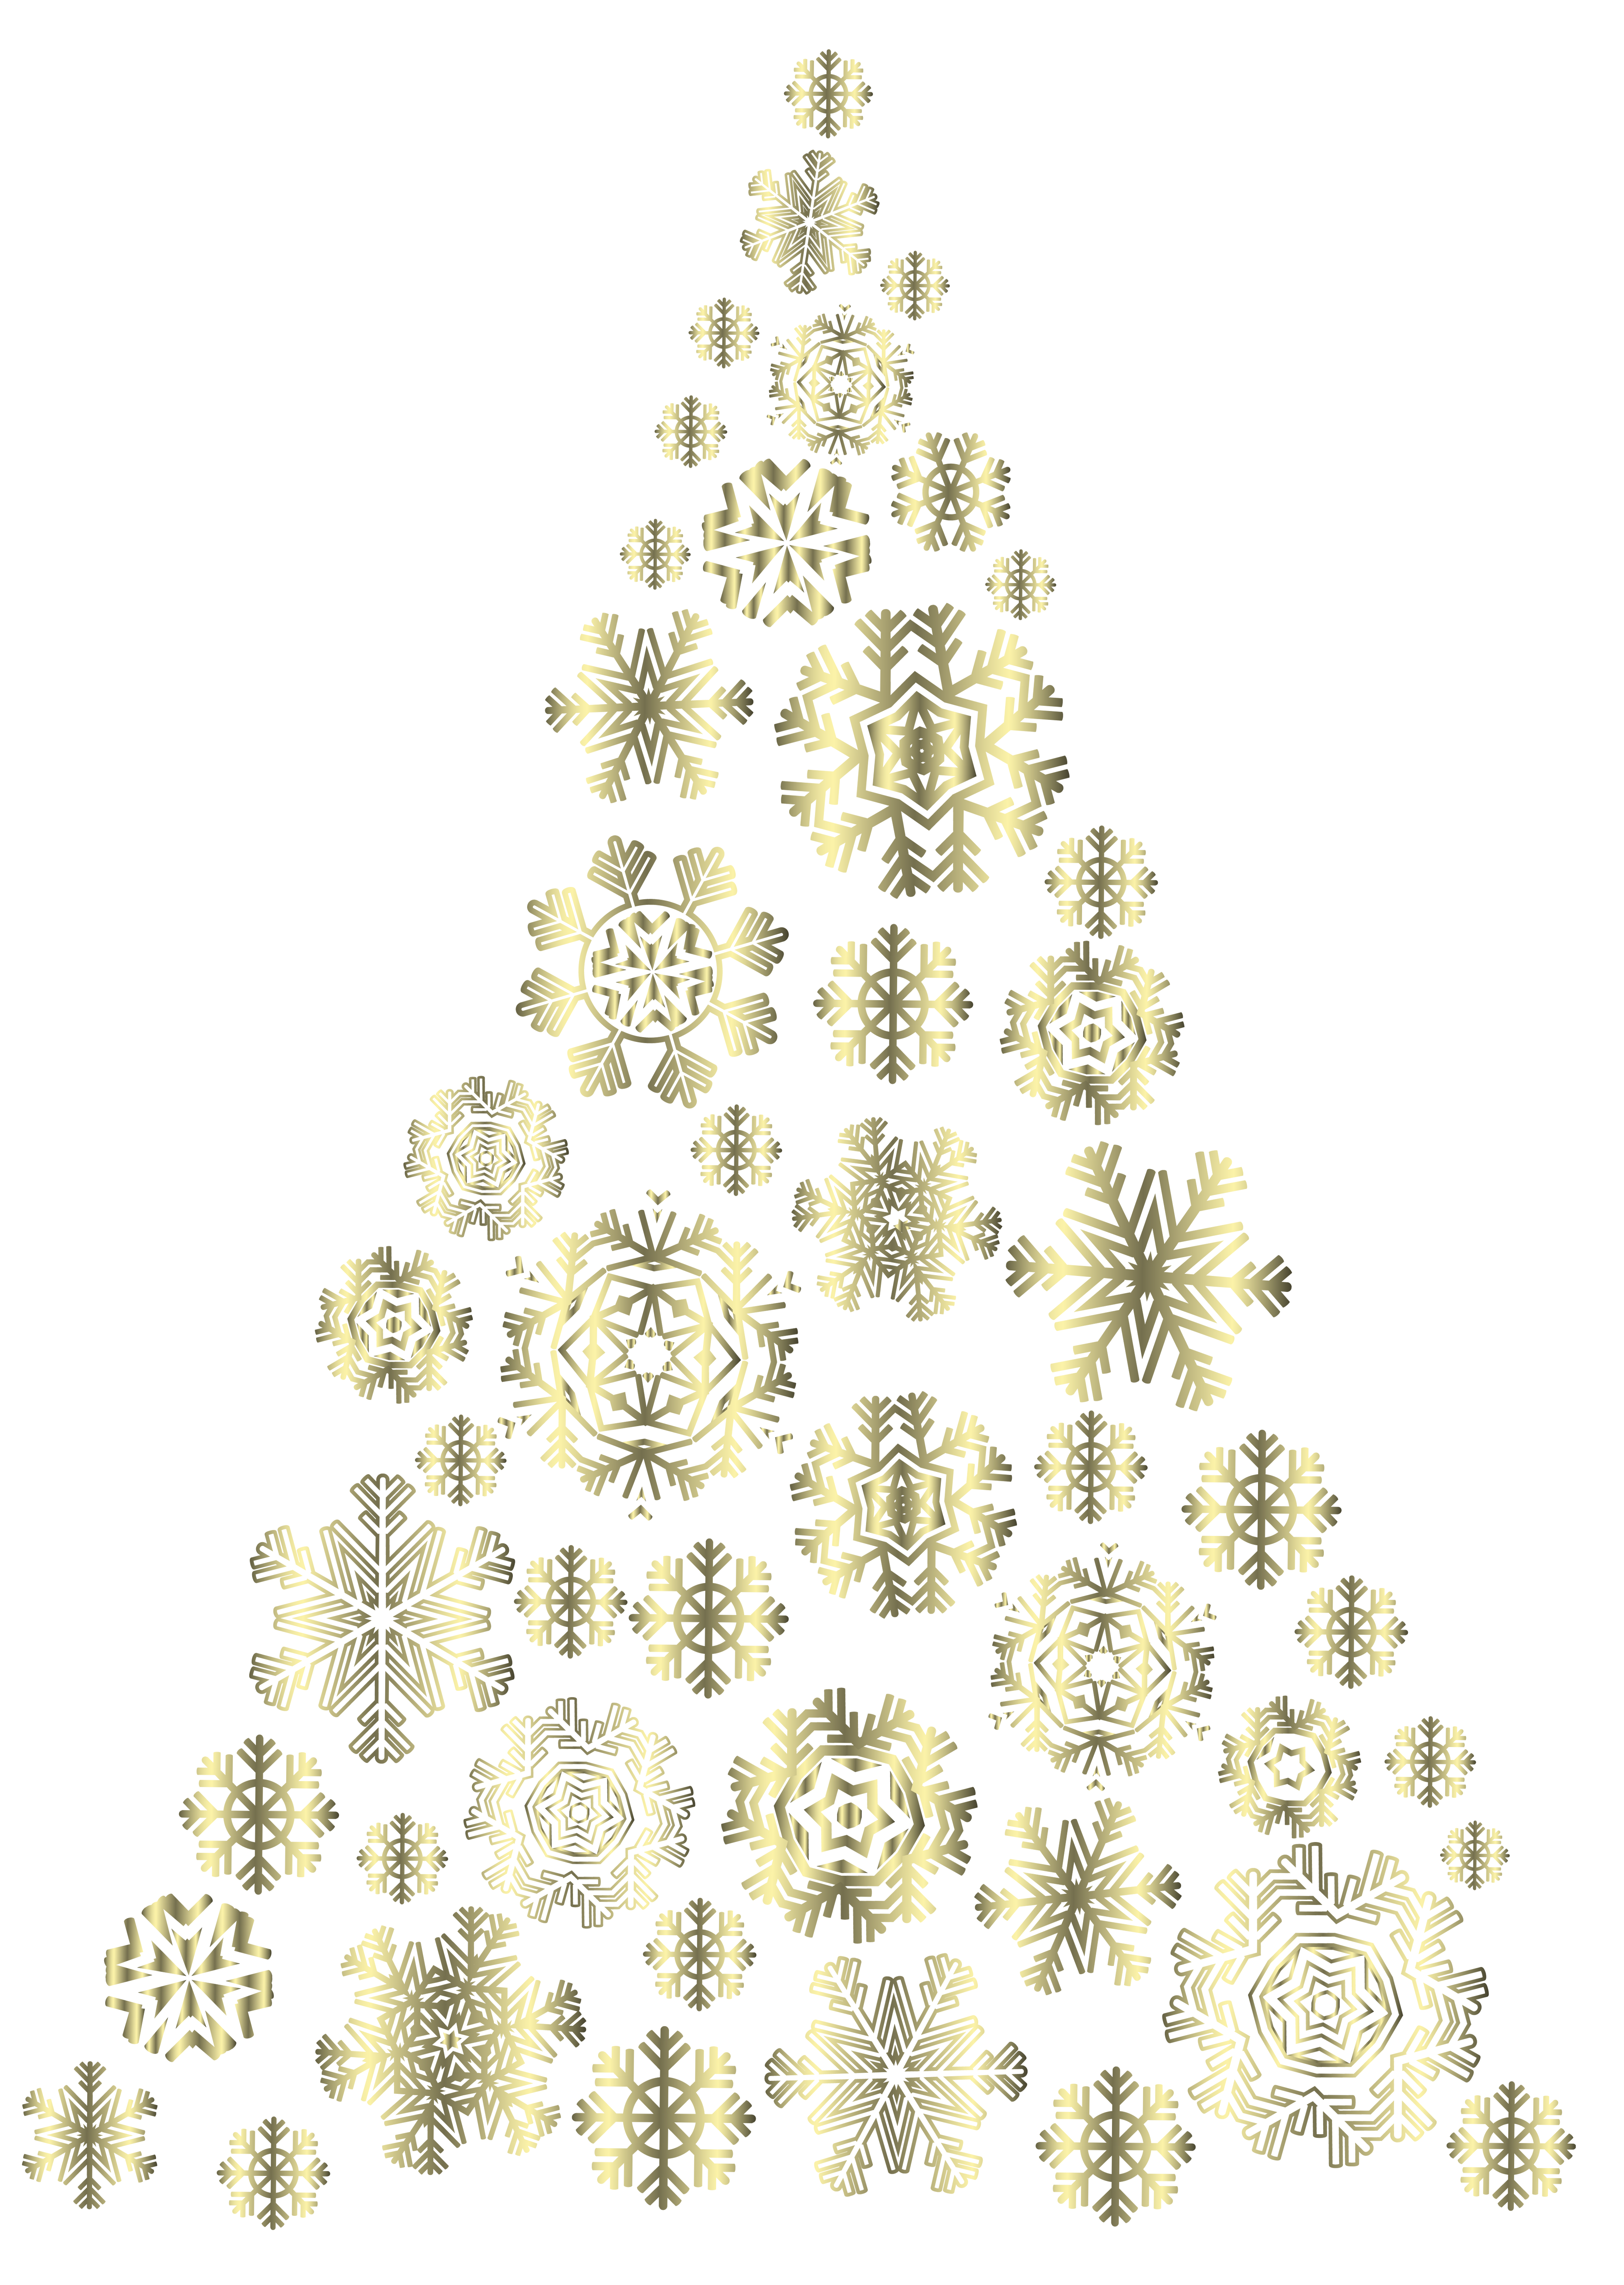 Gold snowflake clipart images banner royalty free library Golden Snowflakes Christmas Tree PNG Image | Gallery Yopriceville ... banner royalty free library